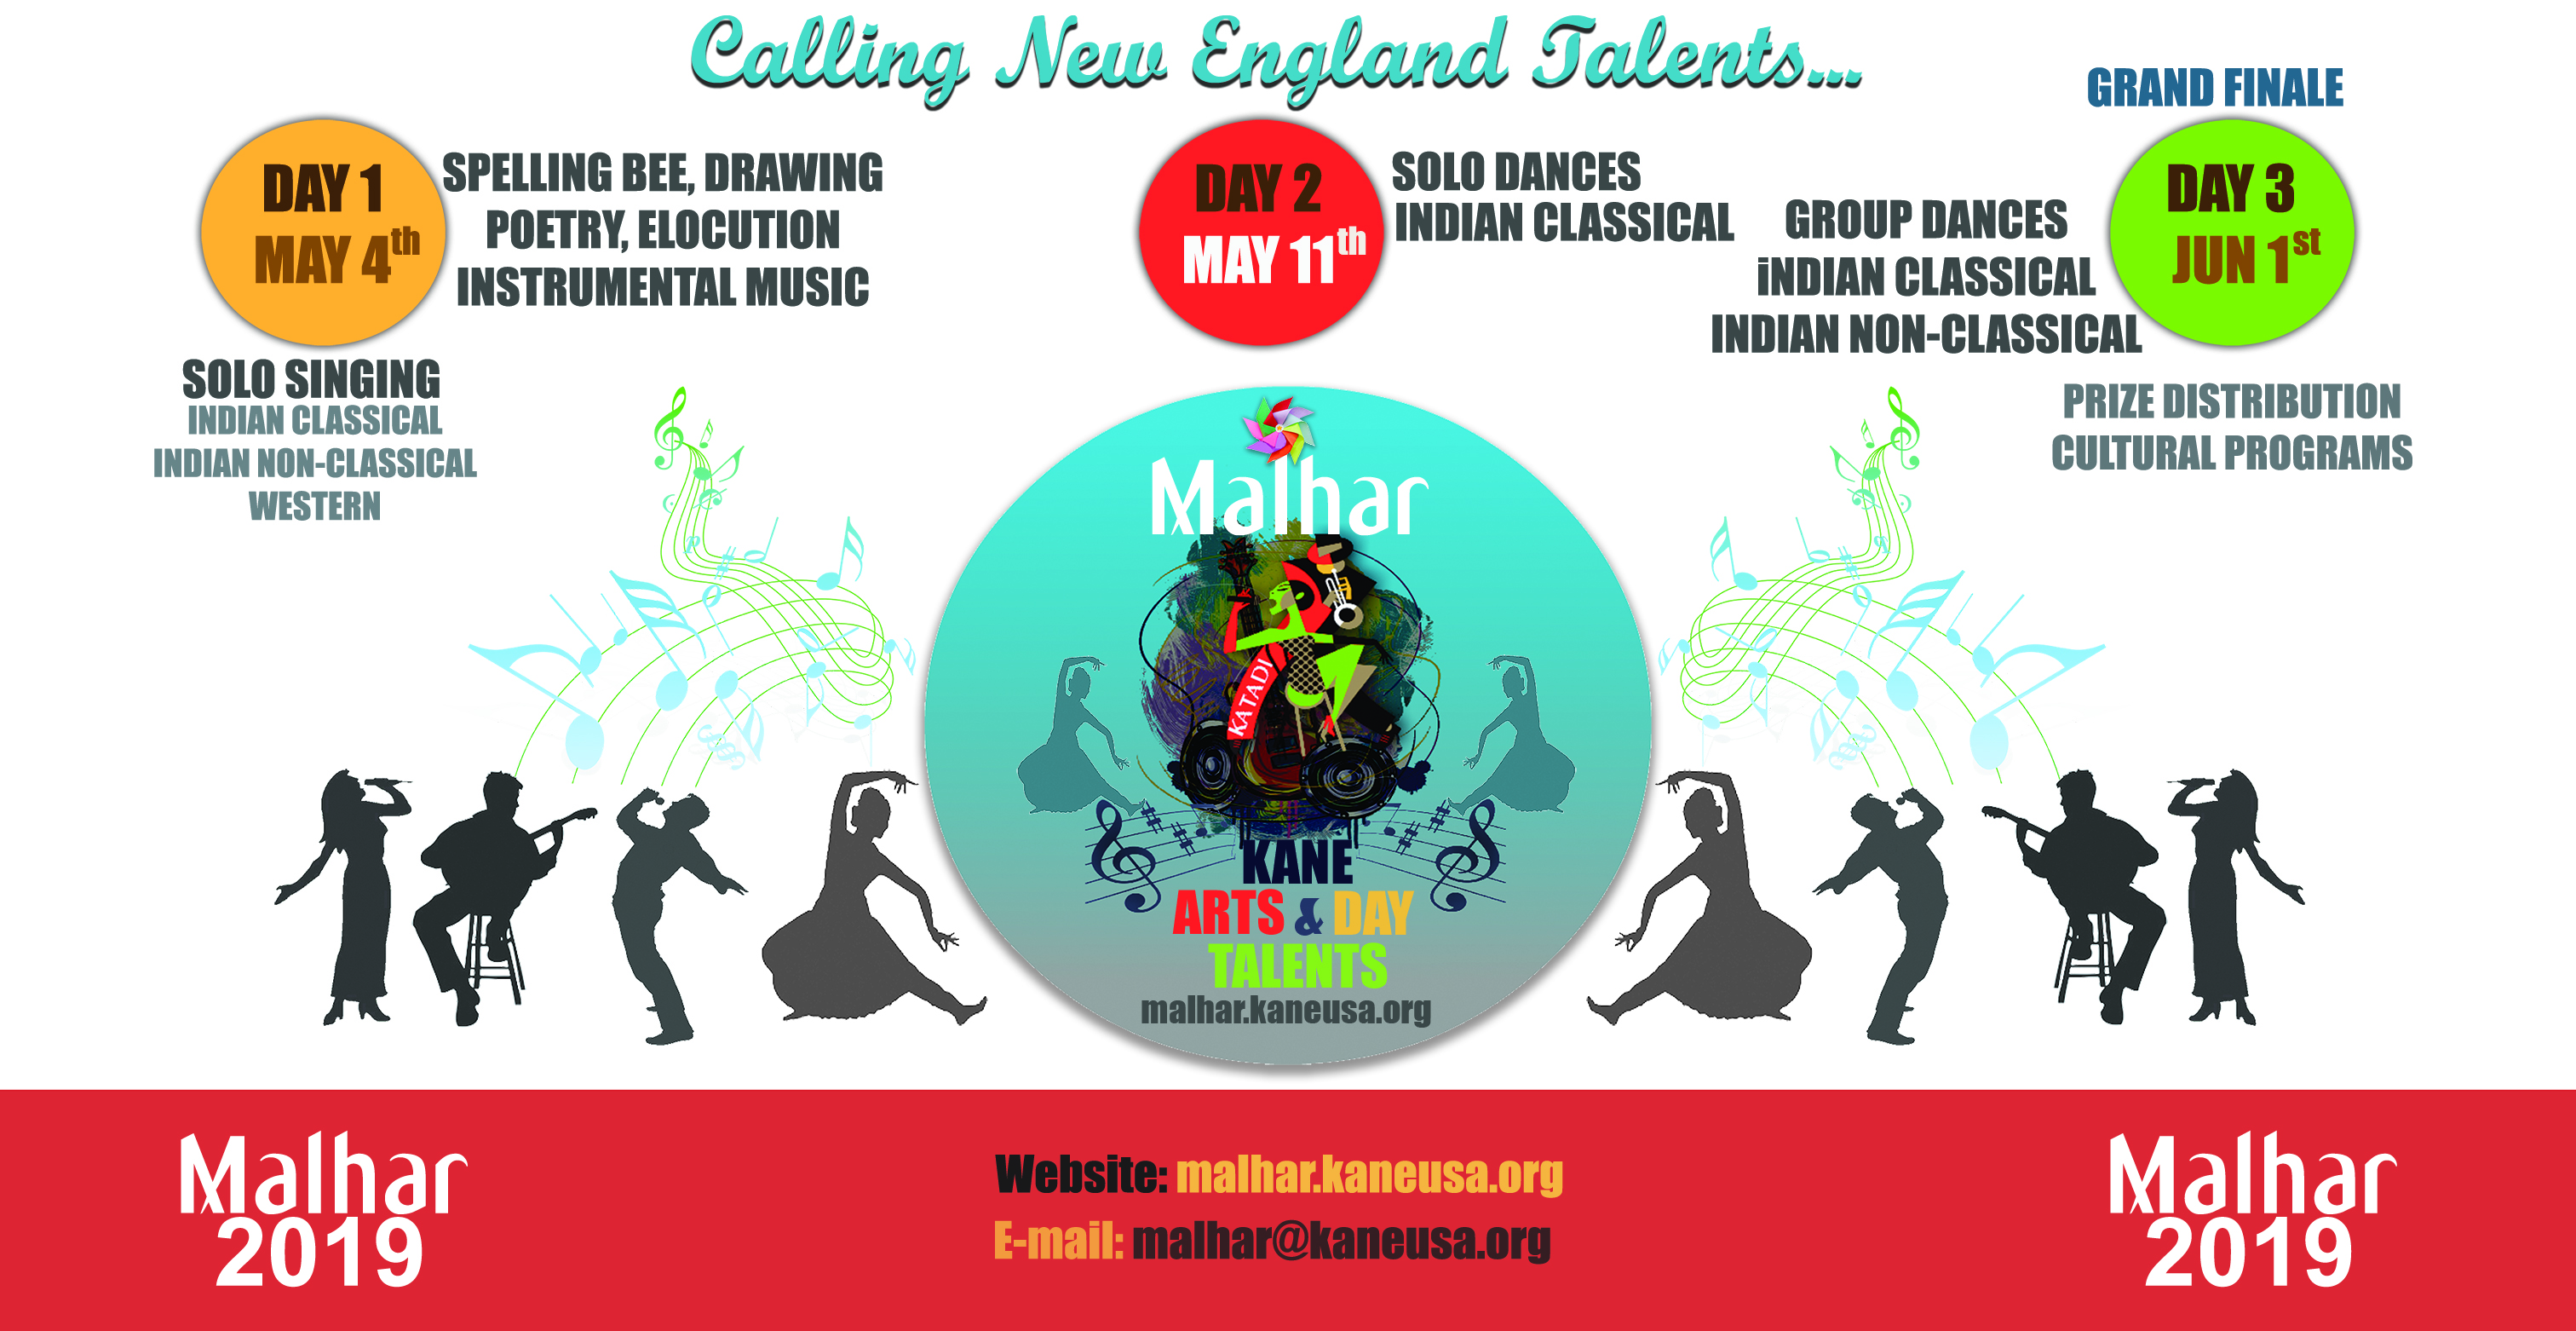 Malhar 2019- May 4th, May 11th & June 1st